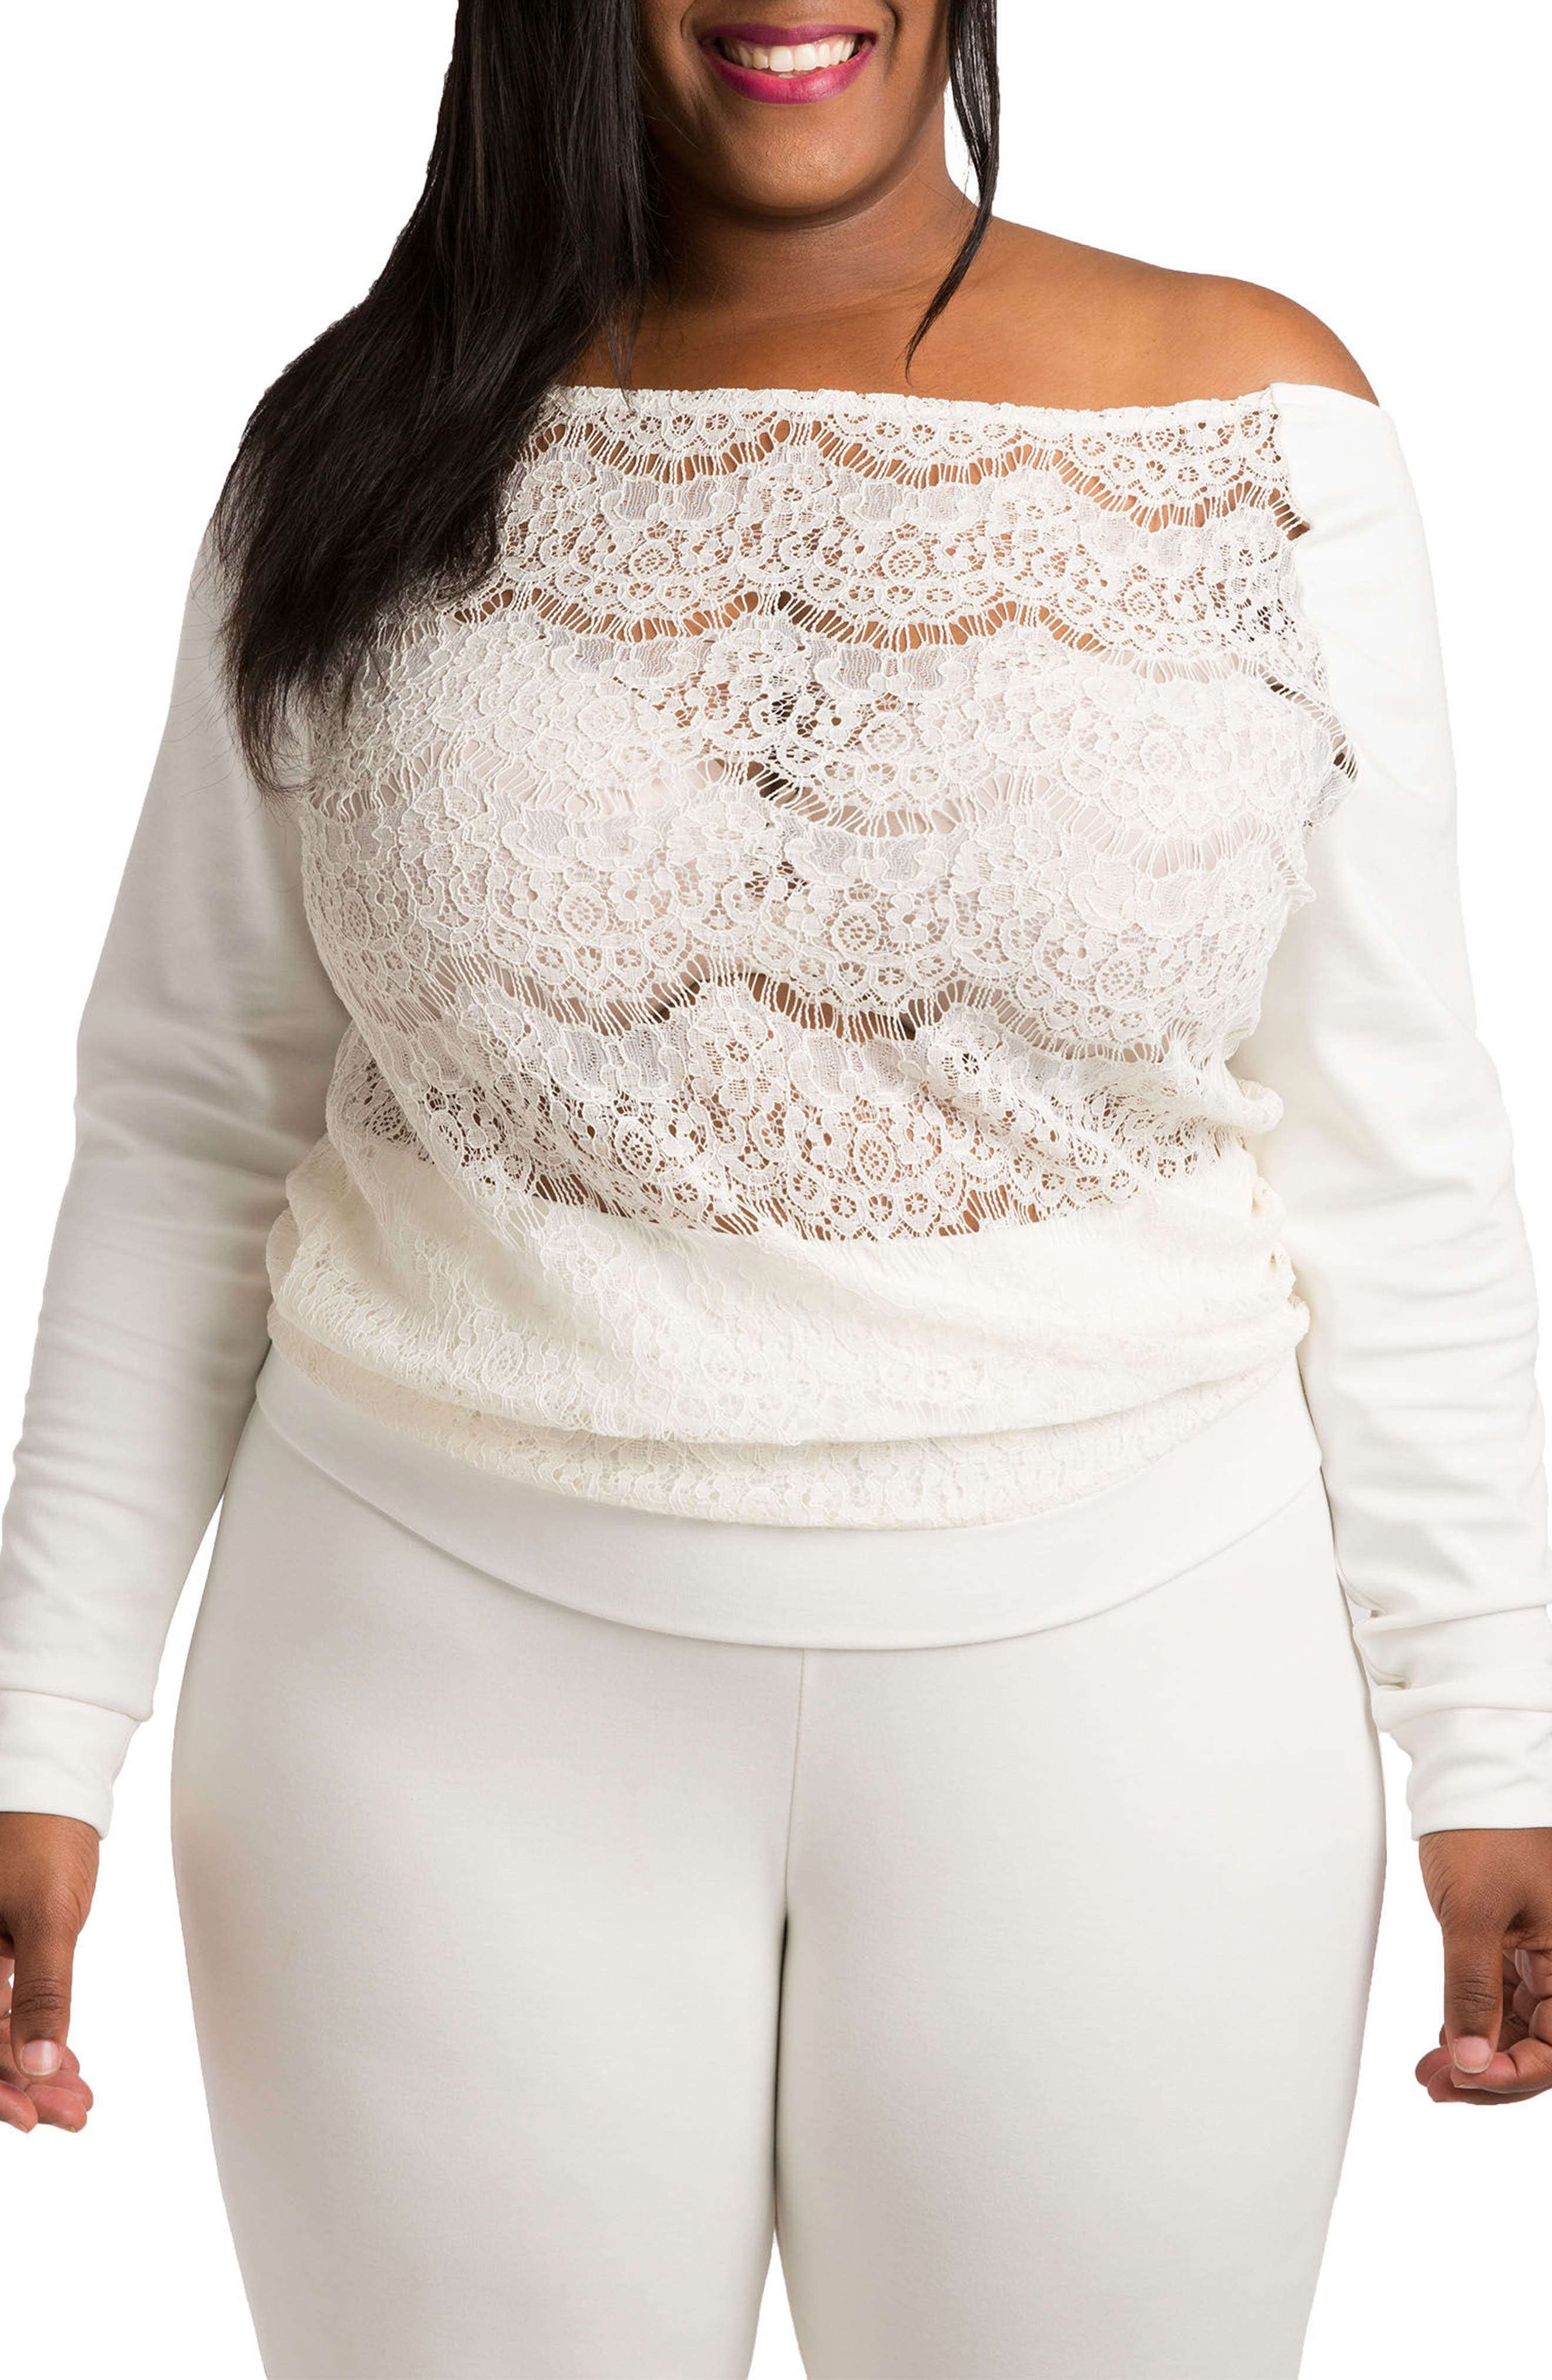 POETIC JUSTICE Lace & Ponte Knit Top, Main, color, WHITE